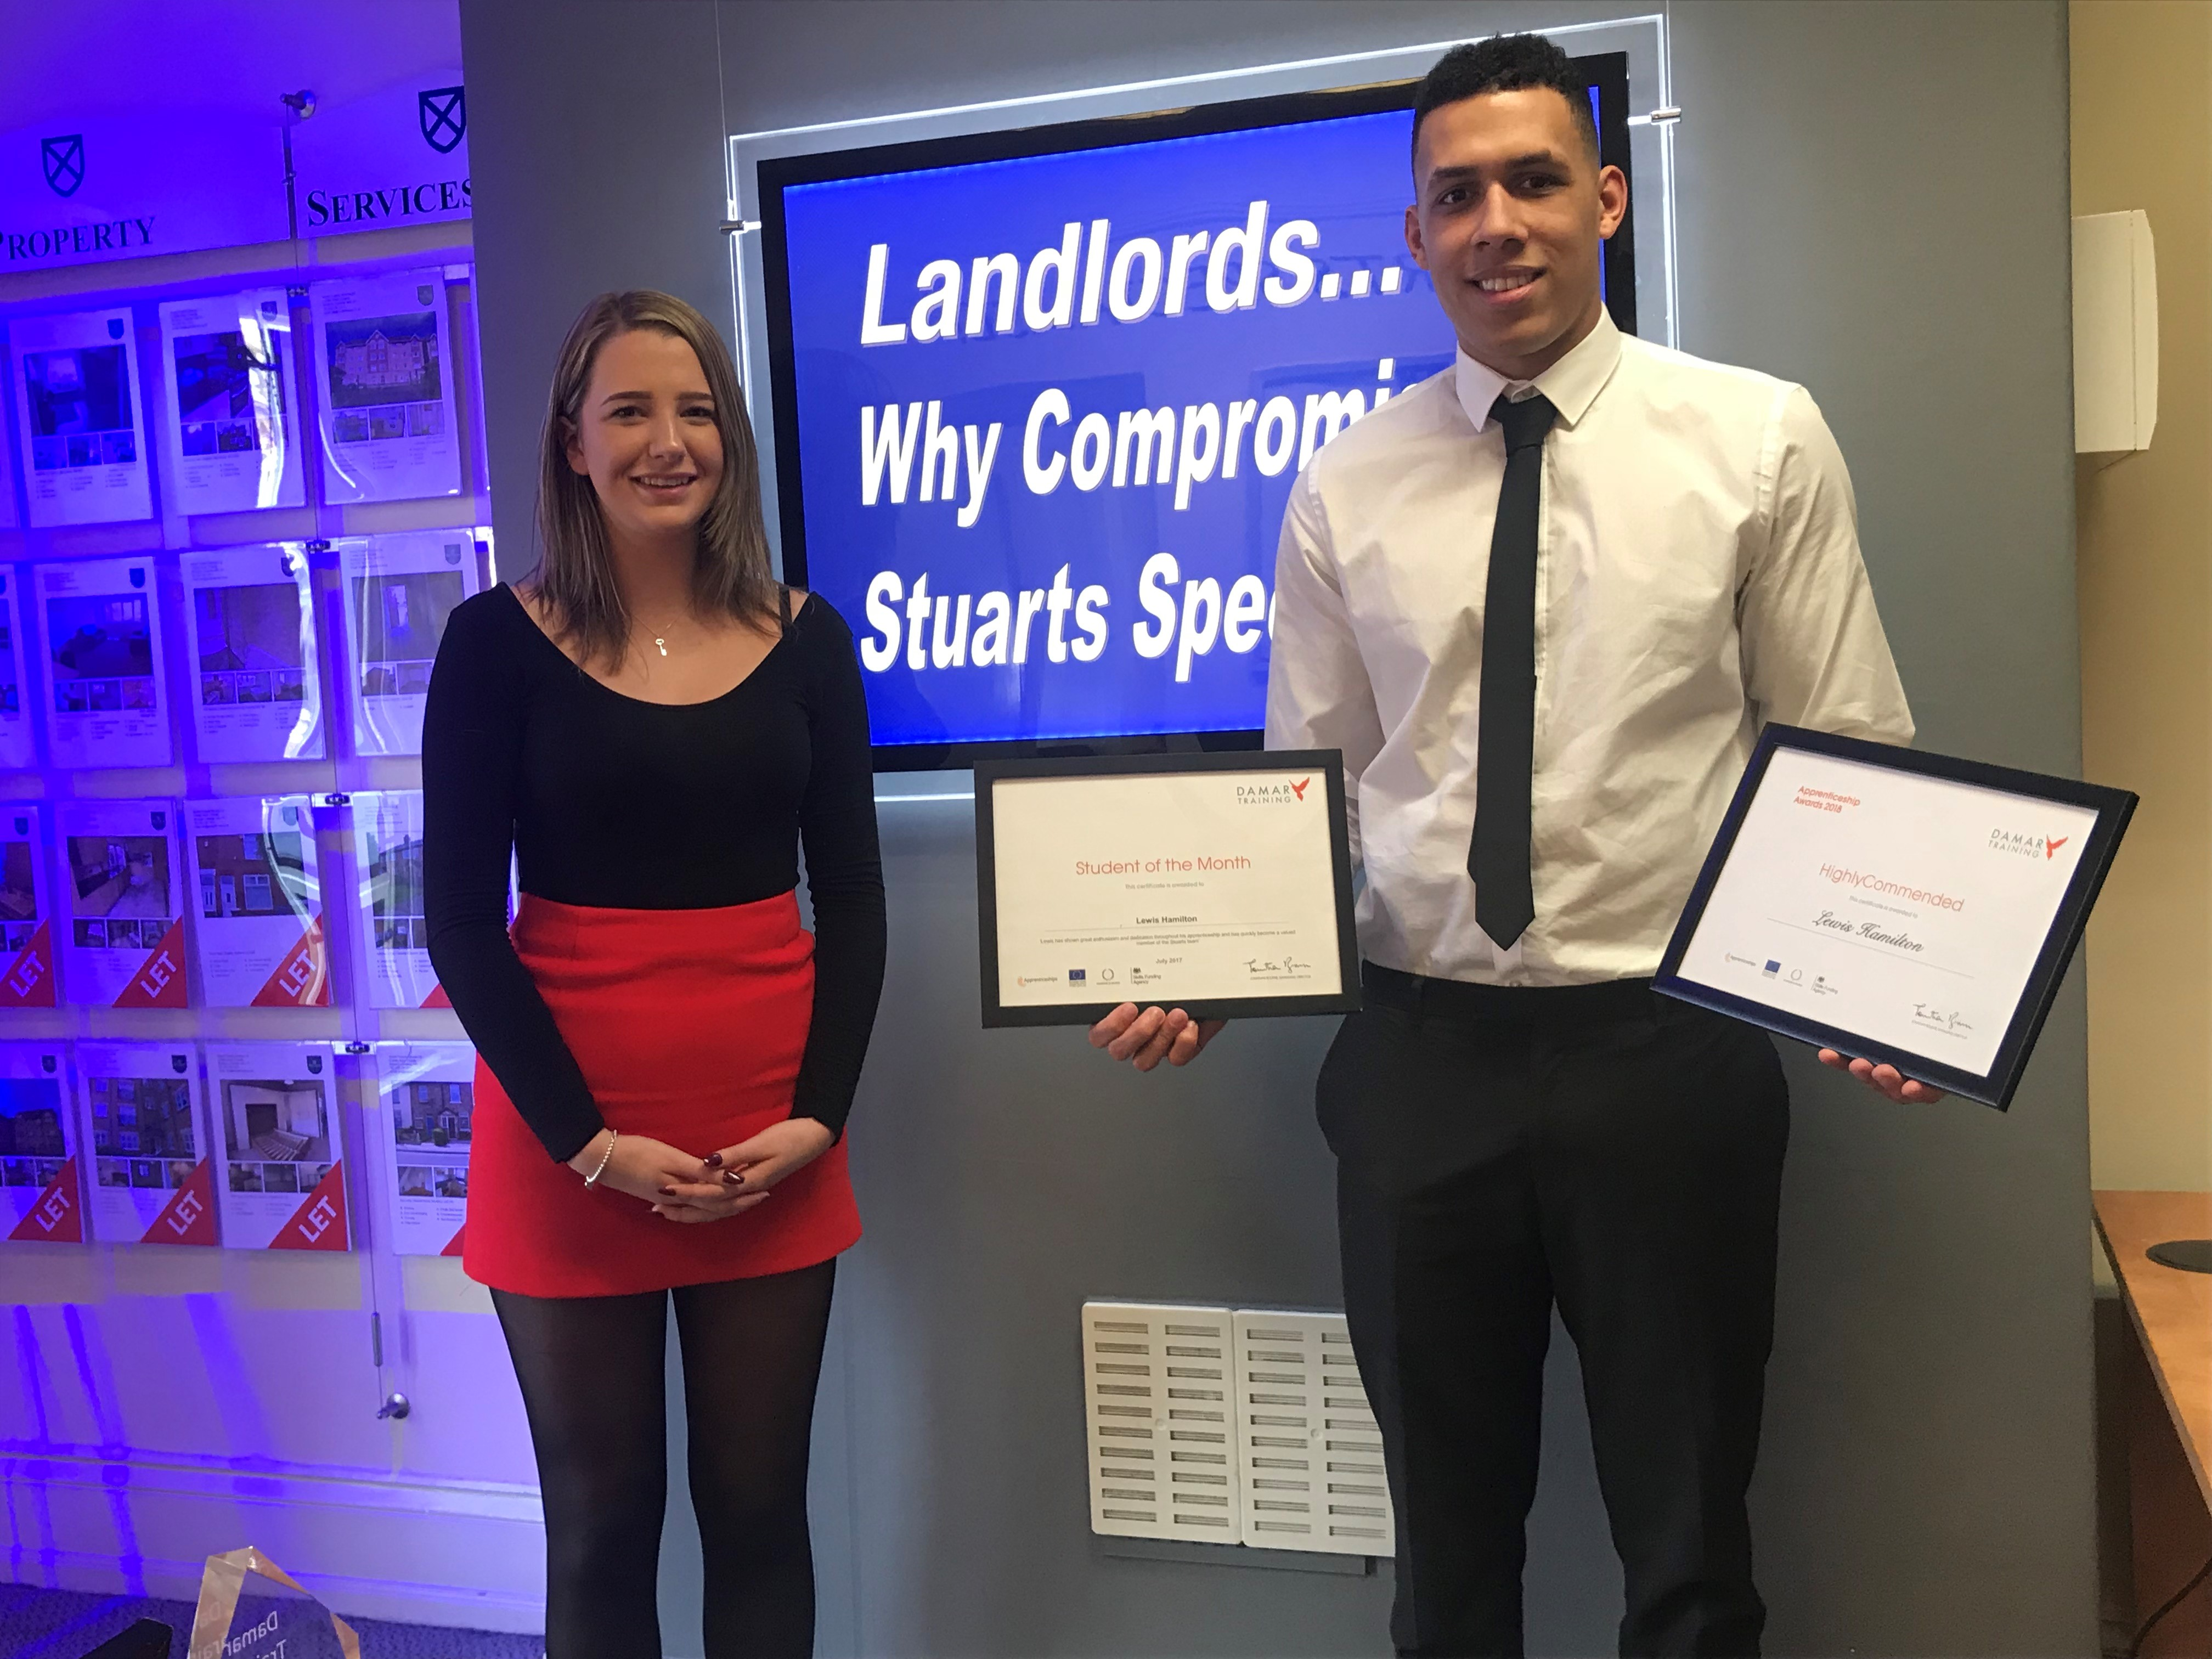 Apprenticeship For Olivia Welcomed By Lewis Hamilton Stuarts